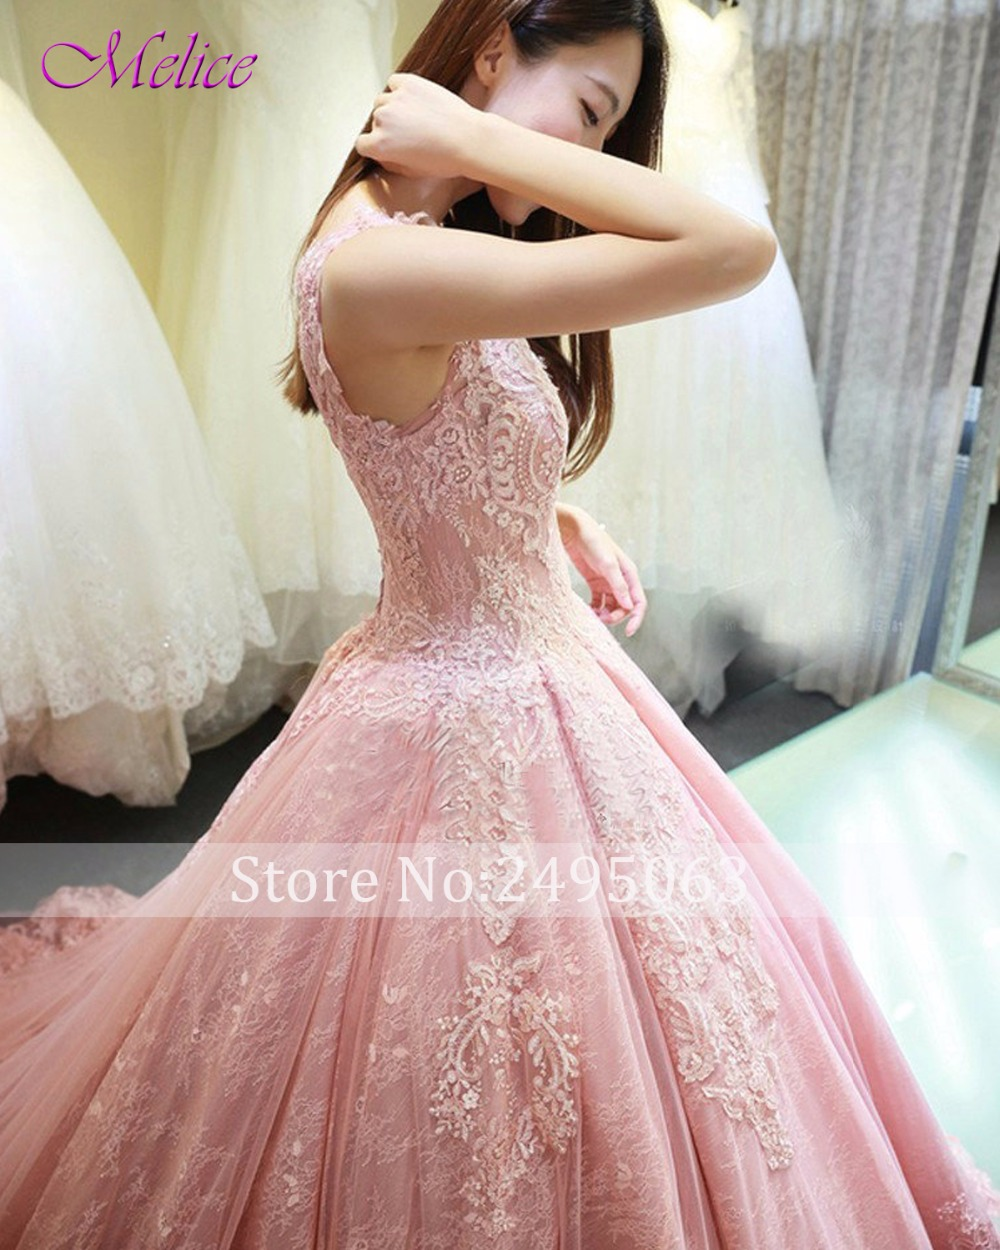 Melice New Arrival Gorgeous Appliques Lace Ball Gown Wedding Dress ...